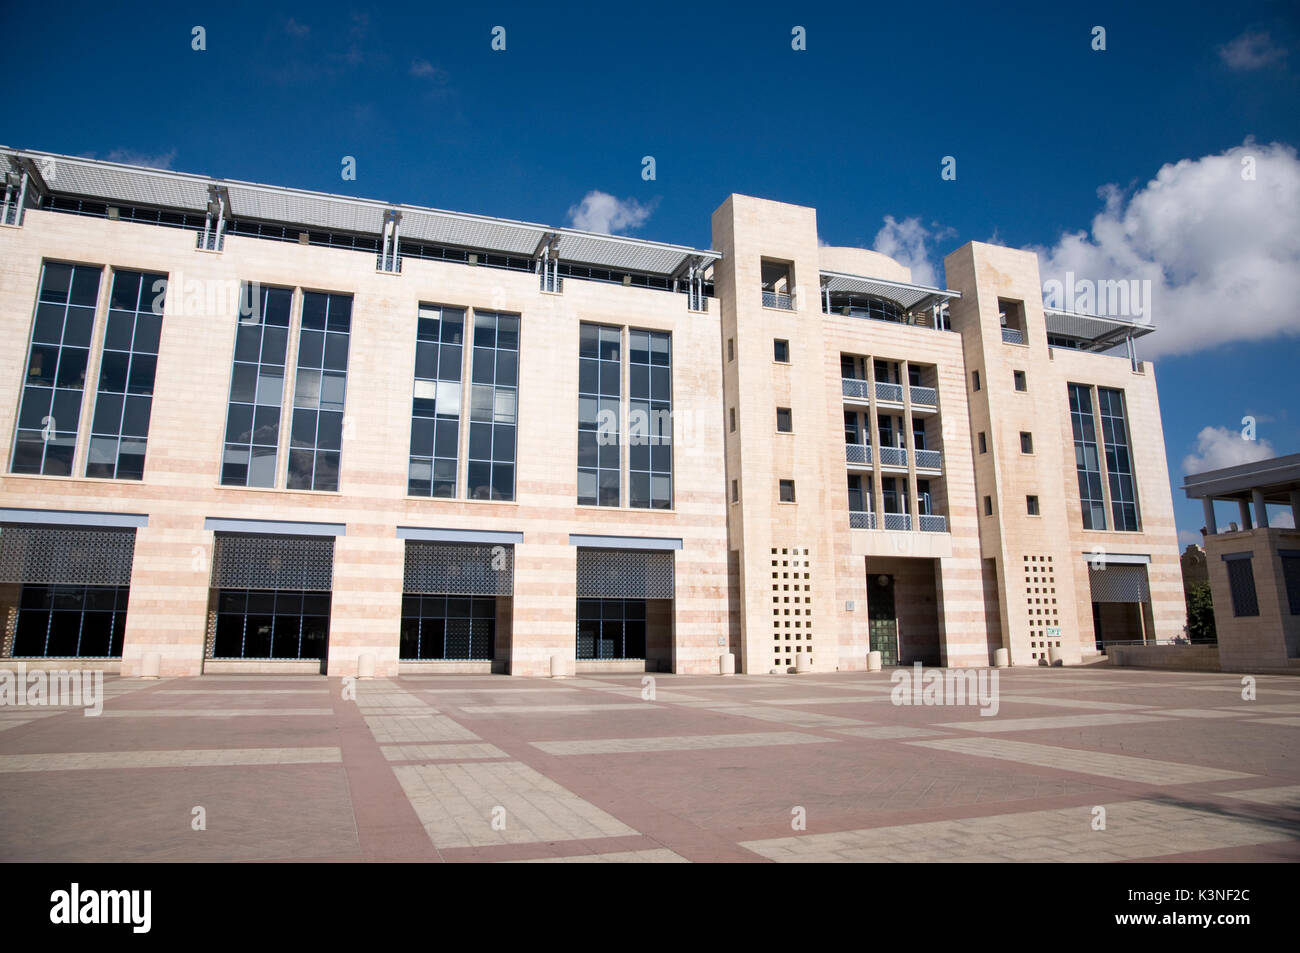 Jerusalem city council - Stock Image